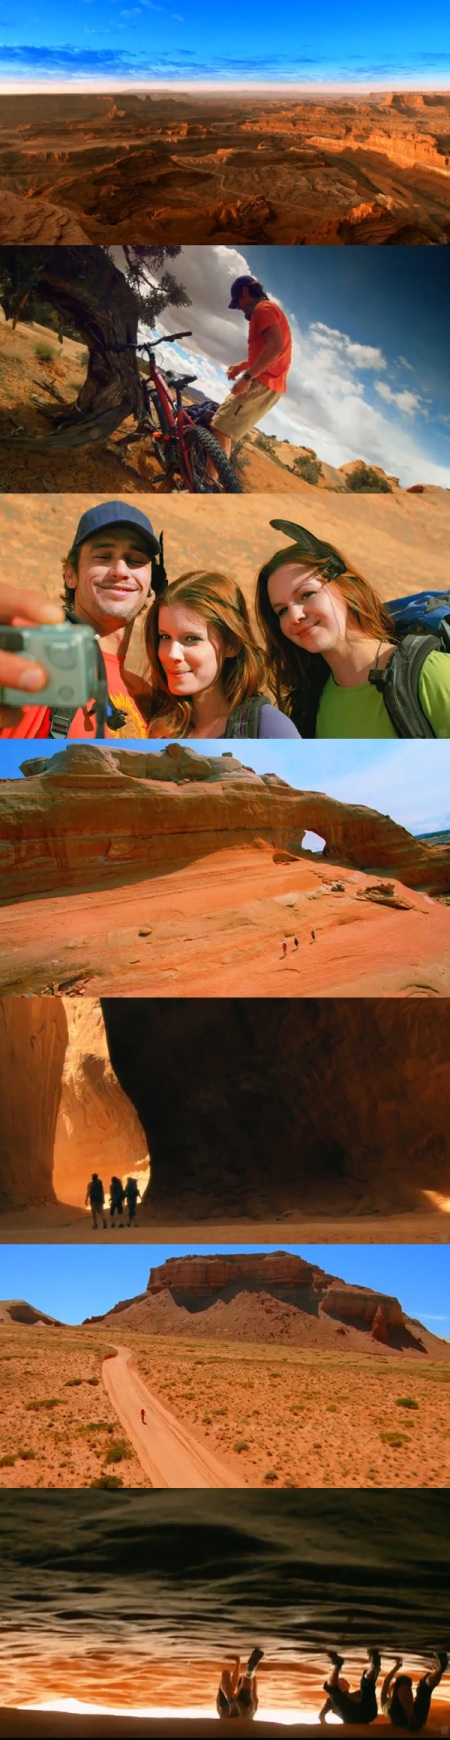 127 Hours Filmed On Location in Utah